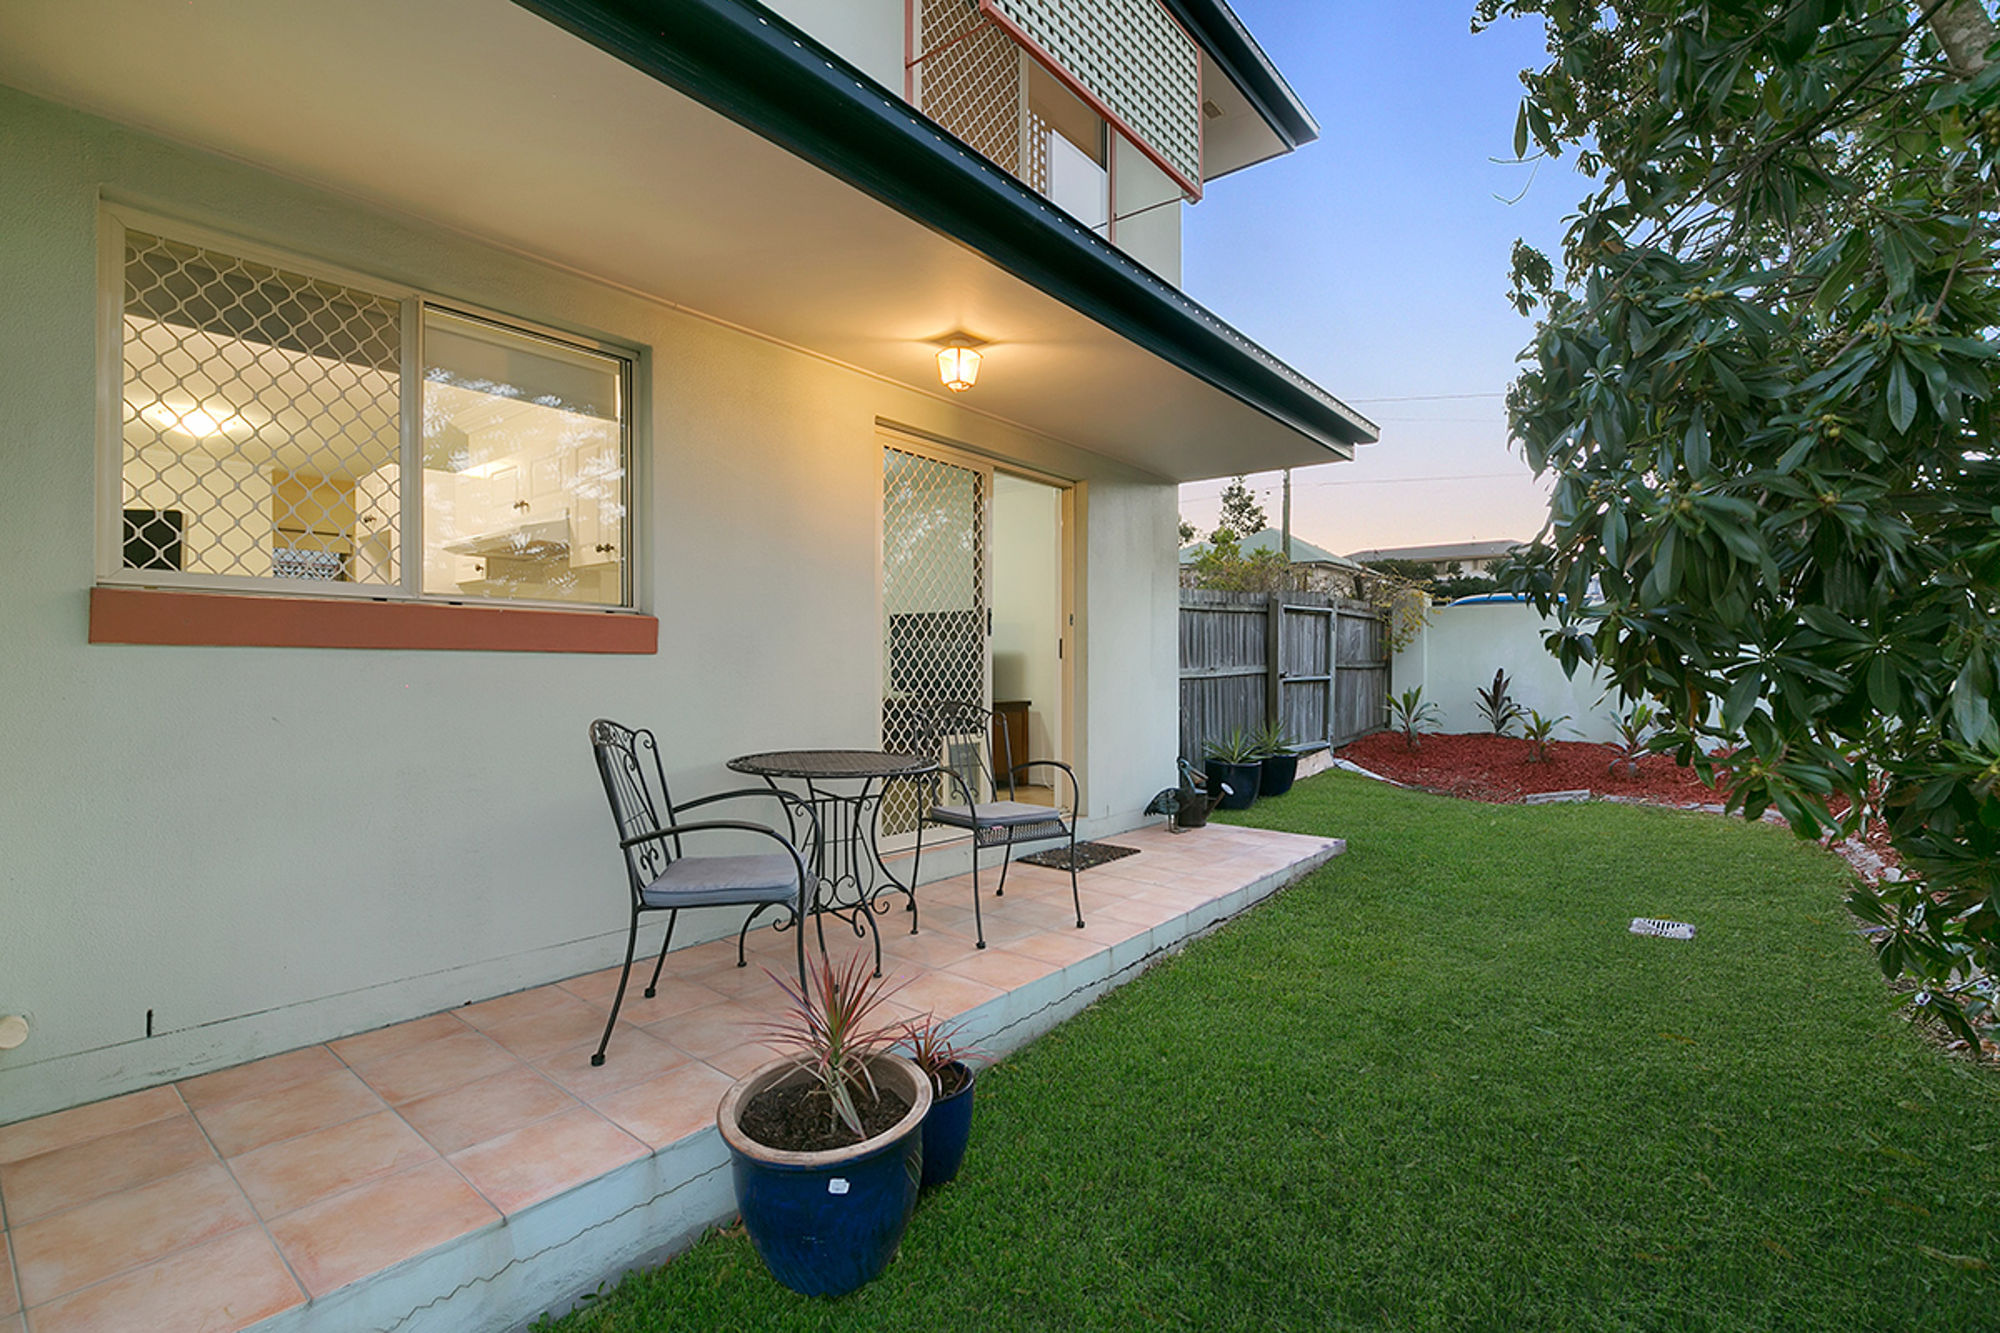 Property in Carina - Low to mid $300,000s